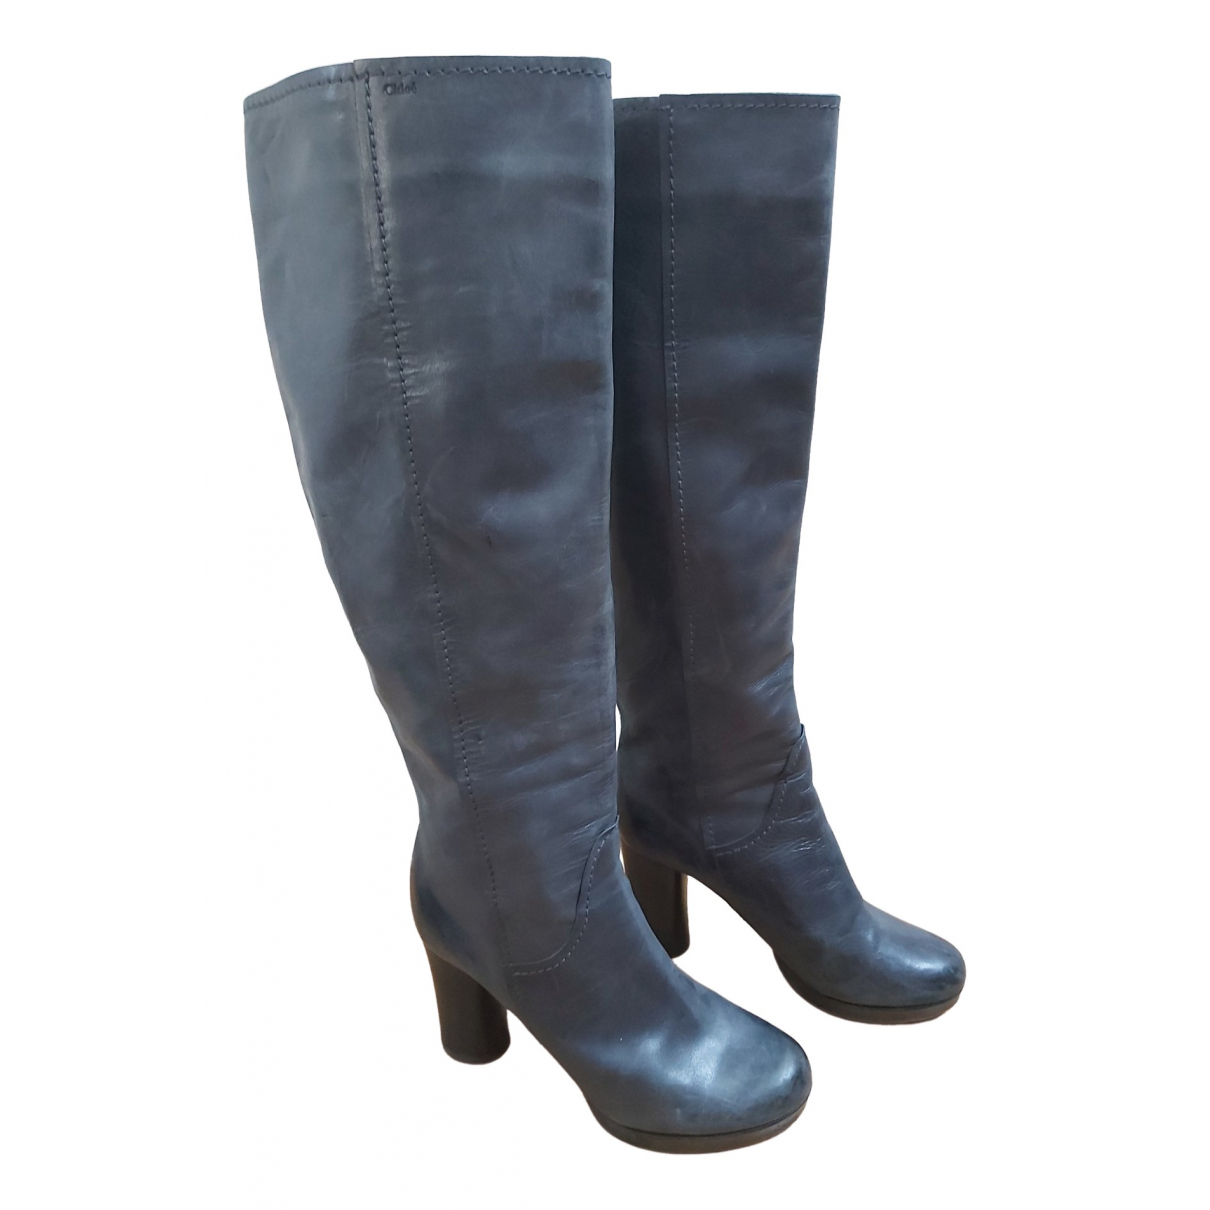 Chloé Béa Grey Leather Boots for Women 38 EU